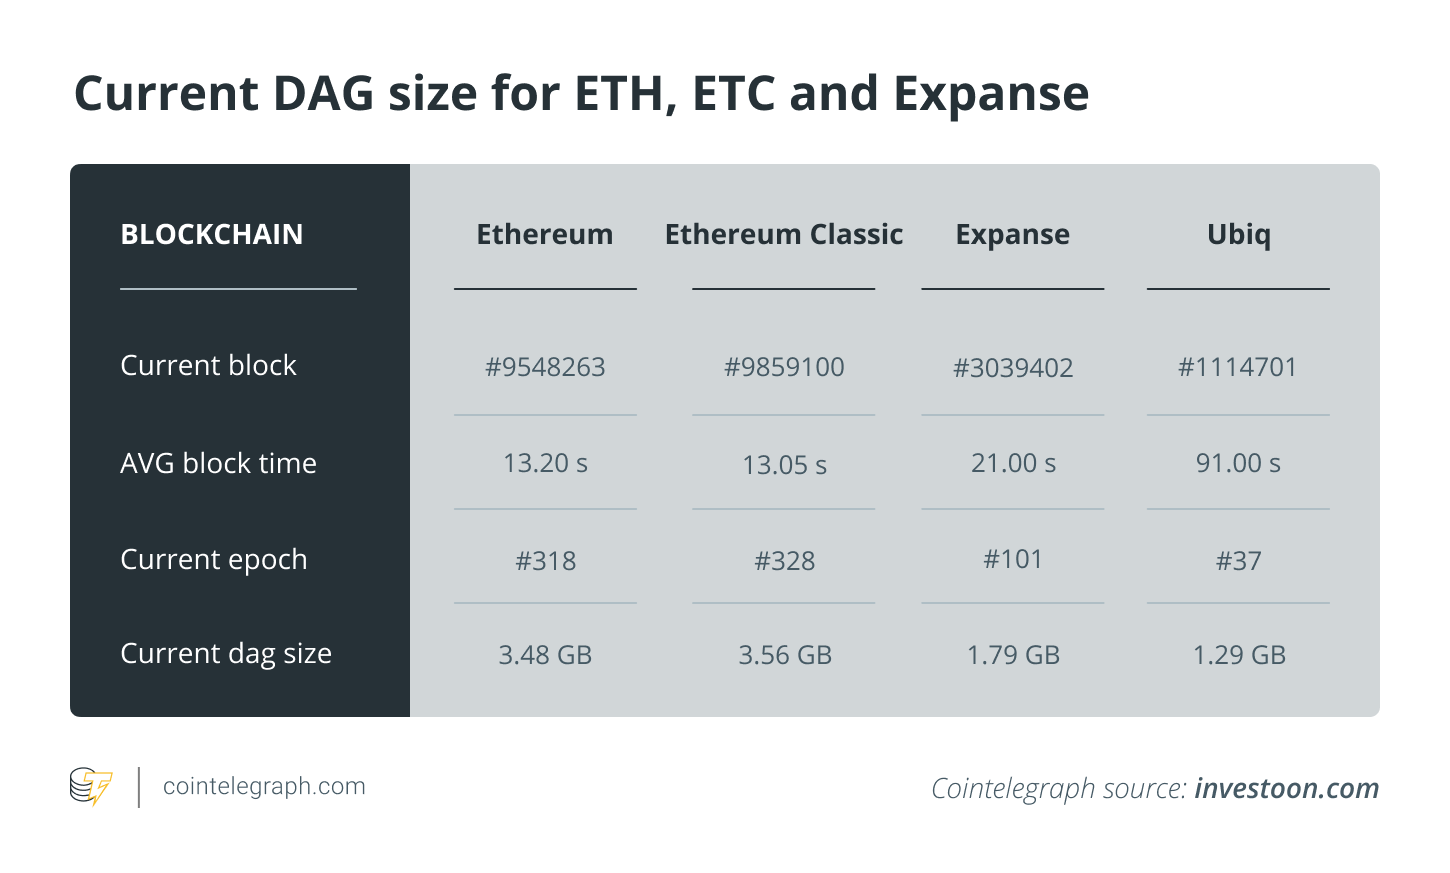 Current DAG size for ETH, ETC and Expanse. Source: Investoon.com